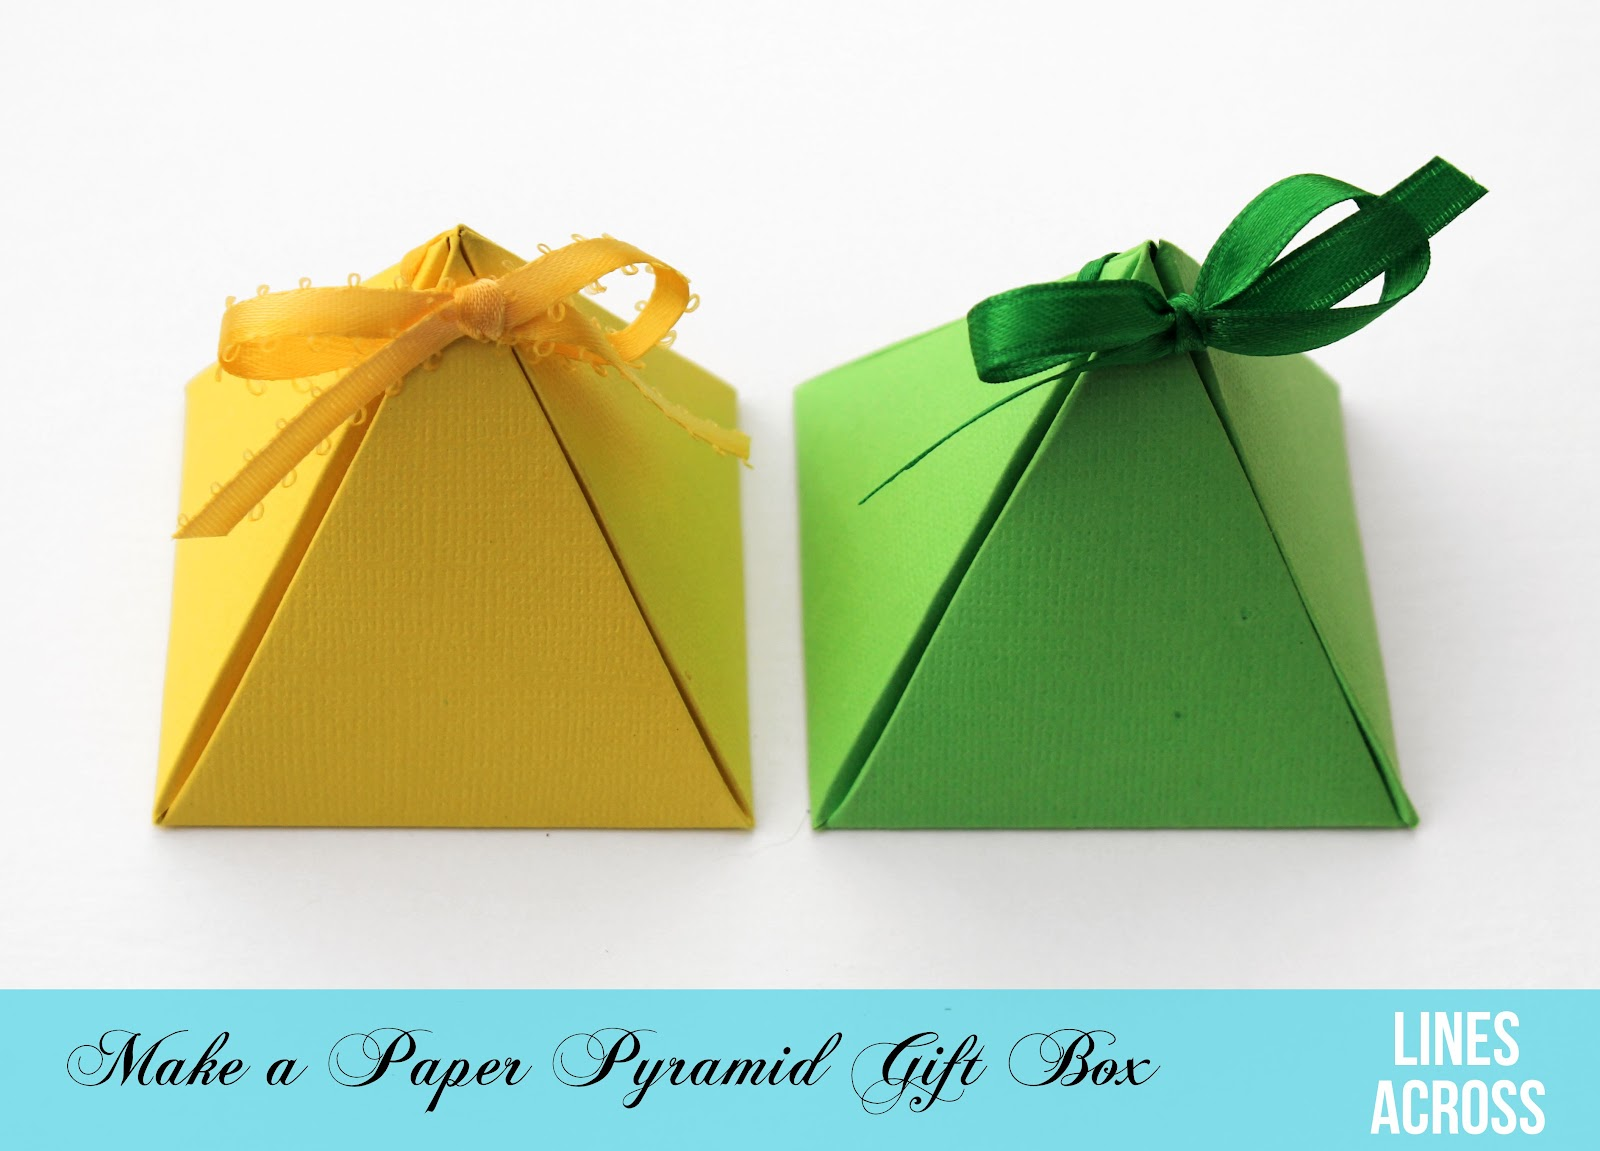 Paper pyramid gift boxes lines across lately ive been a little obsessed with making different kinds of gift boxes so when i came across these pyramid shaped diy gift boxes i knew i had to negle